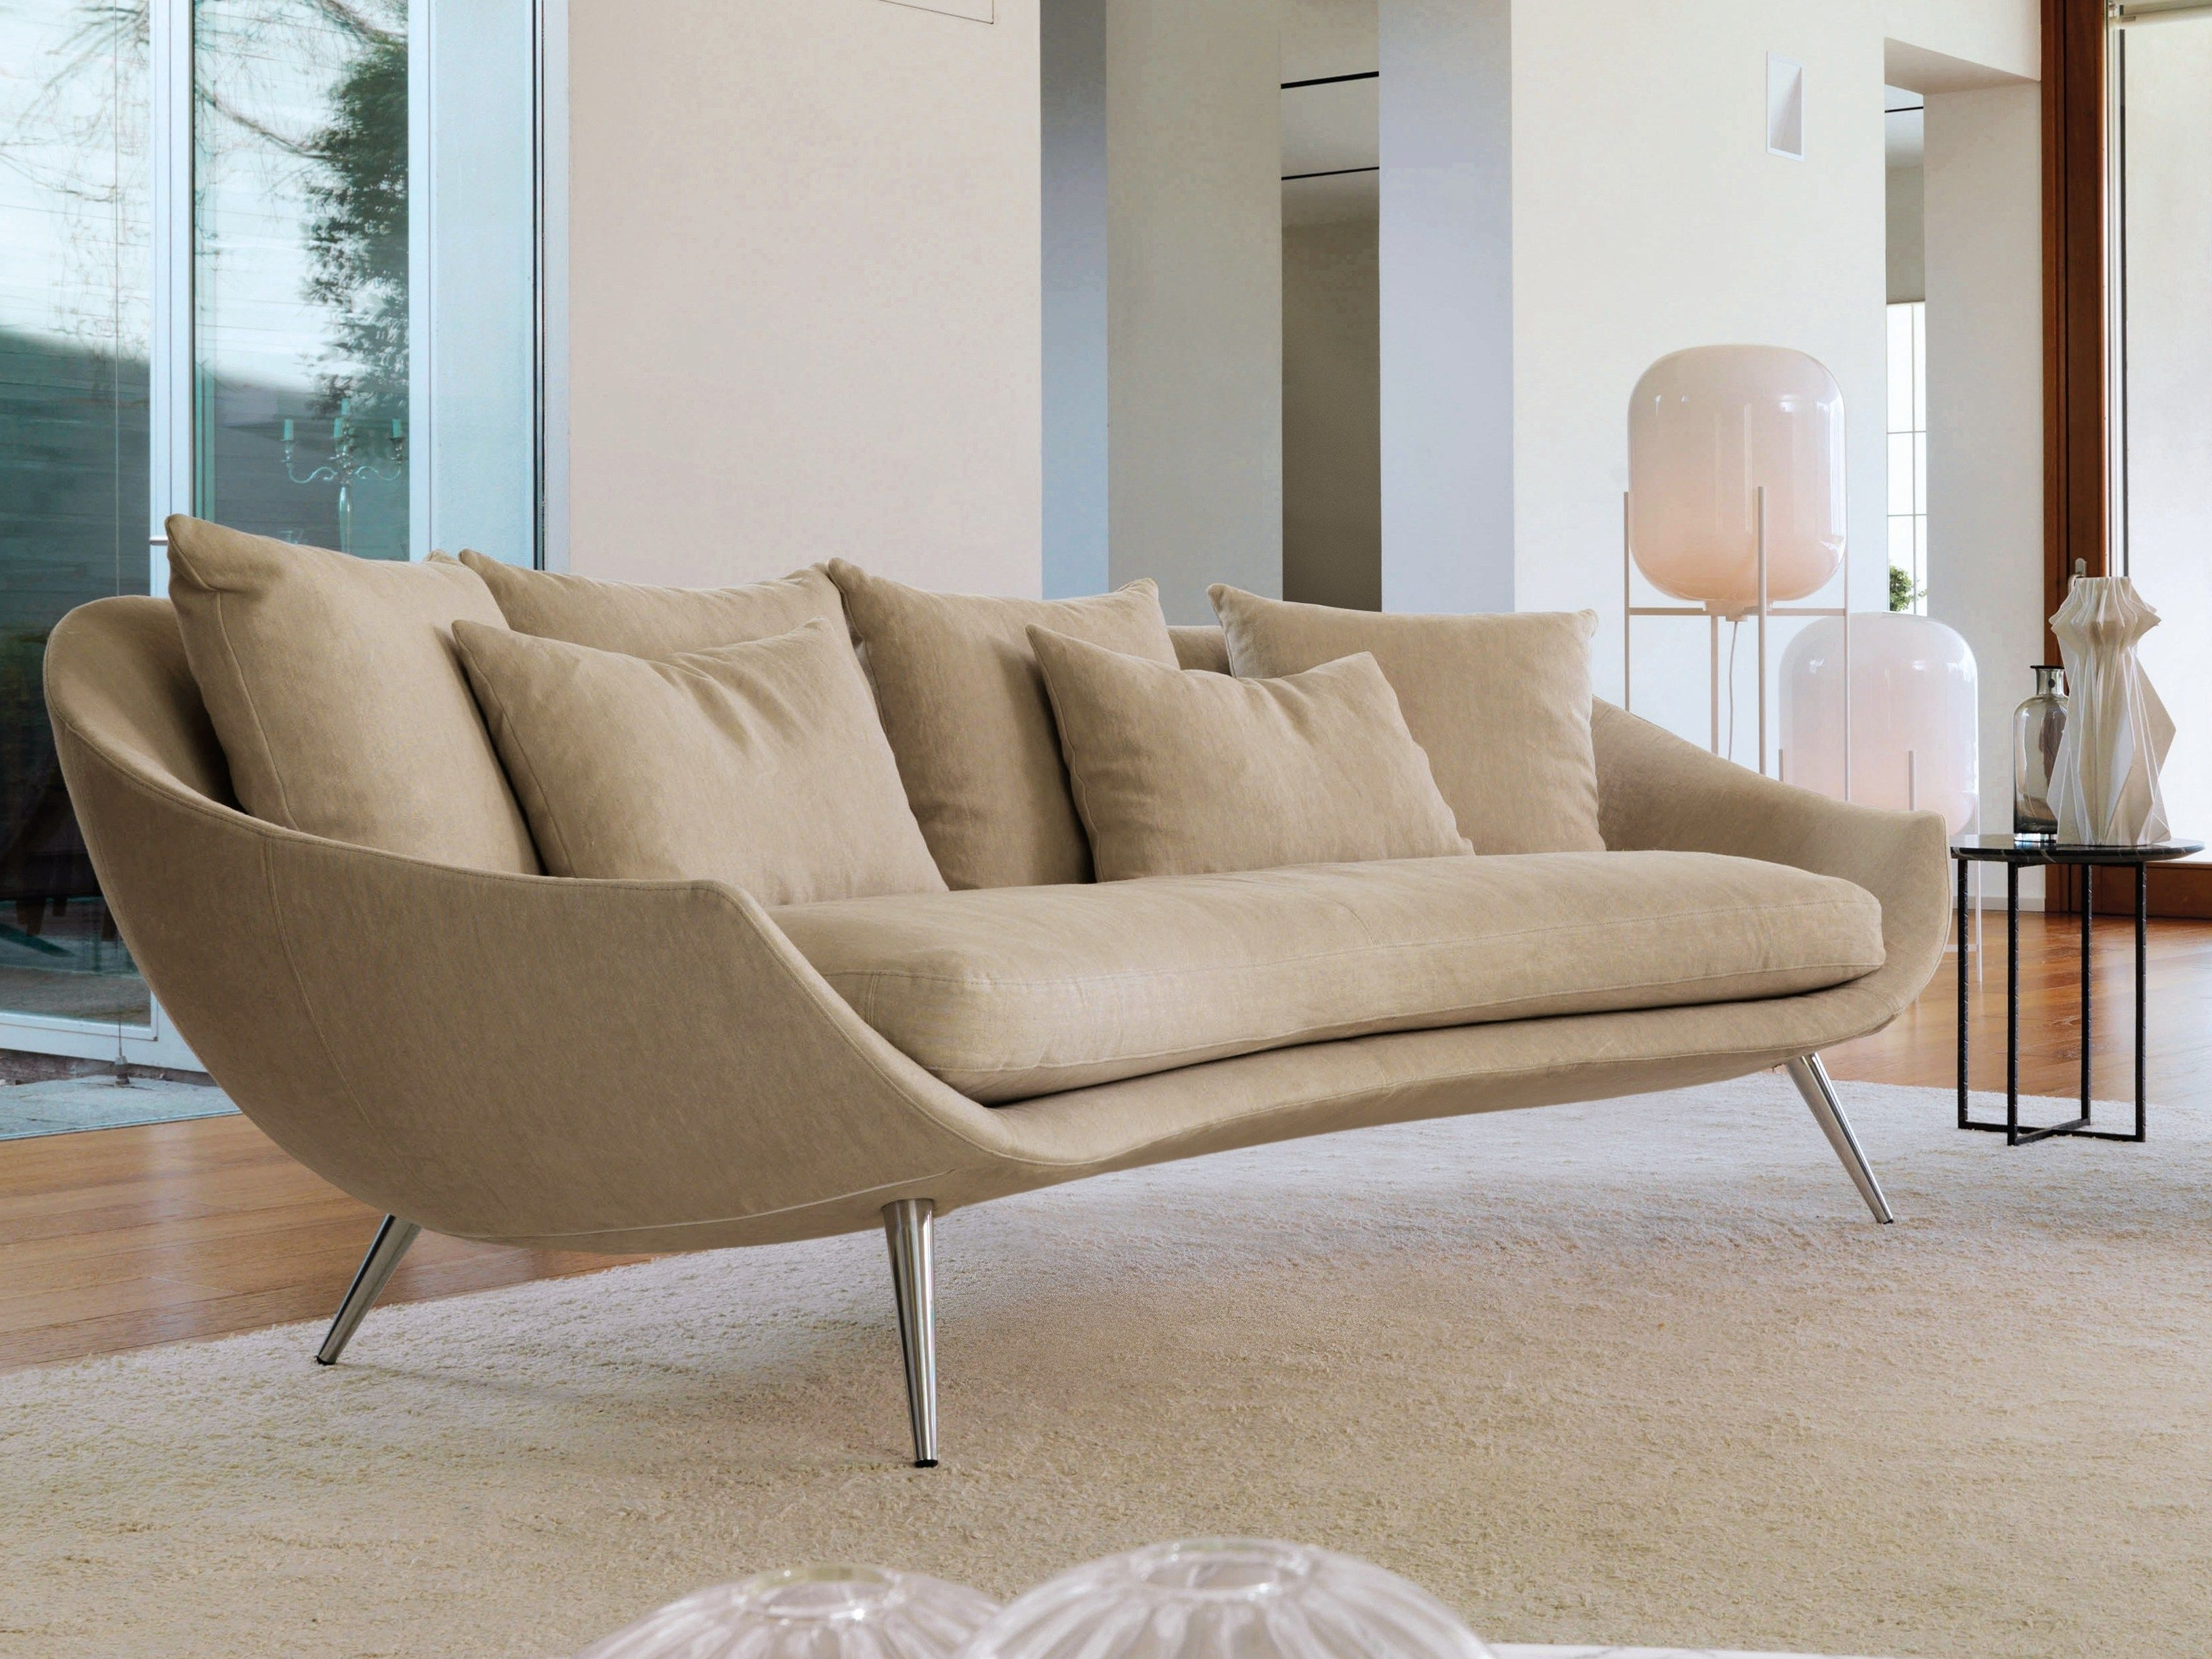 Favorite Sofa With Removable Cover Avìdésirée Design Jai Jalan For Sofas With Removable Covers (View 9 of 15)